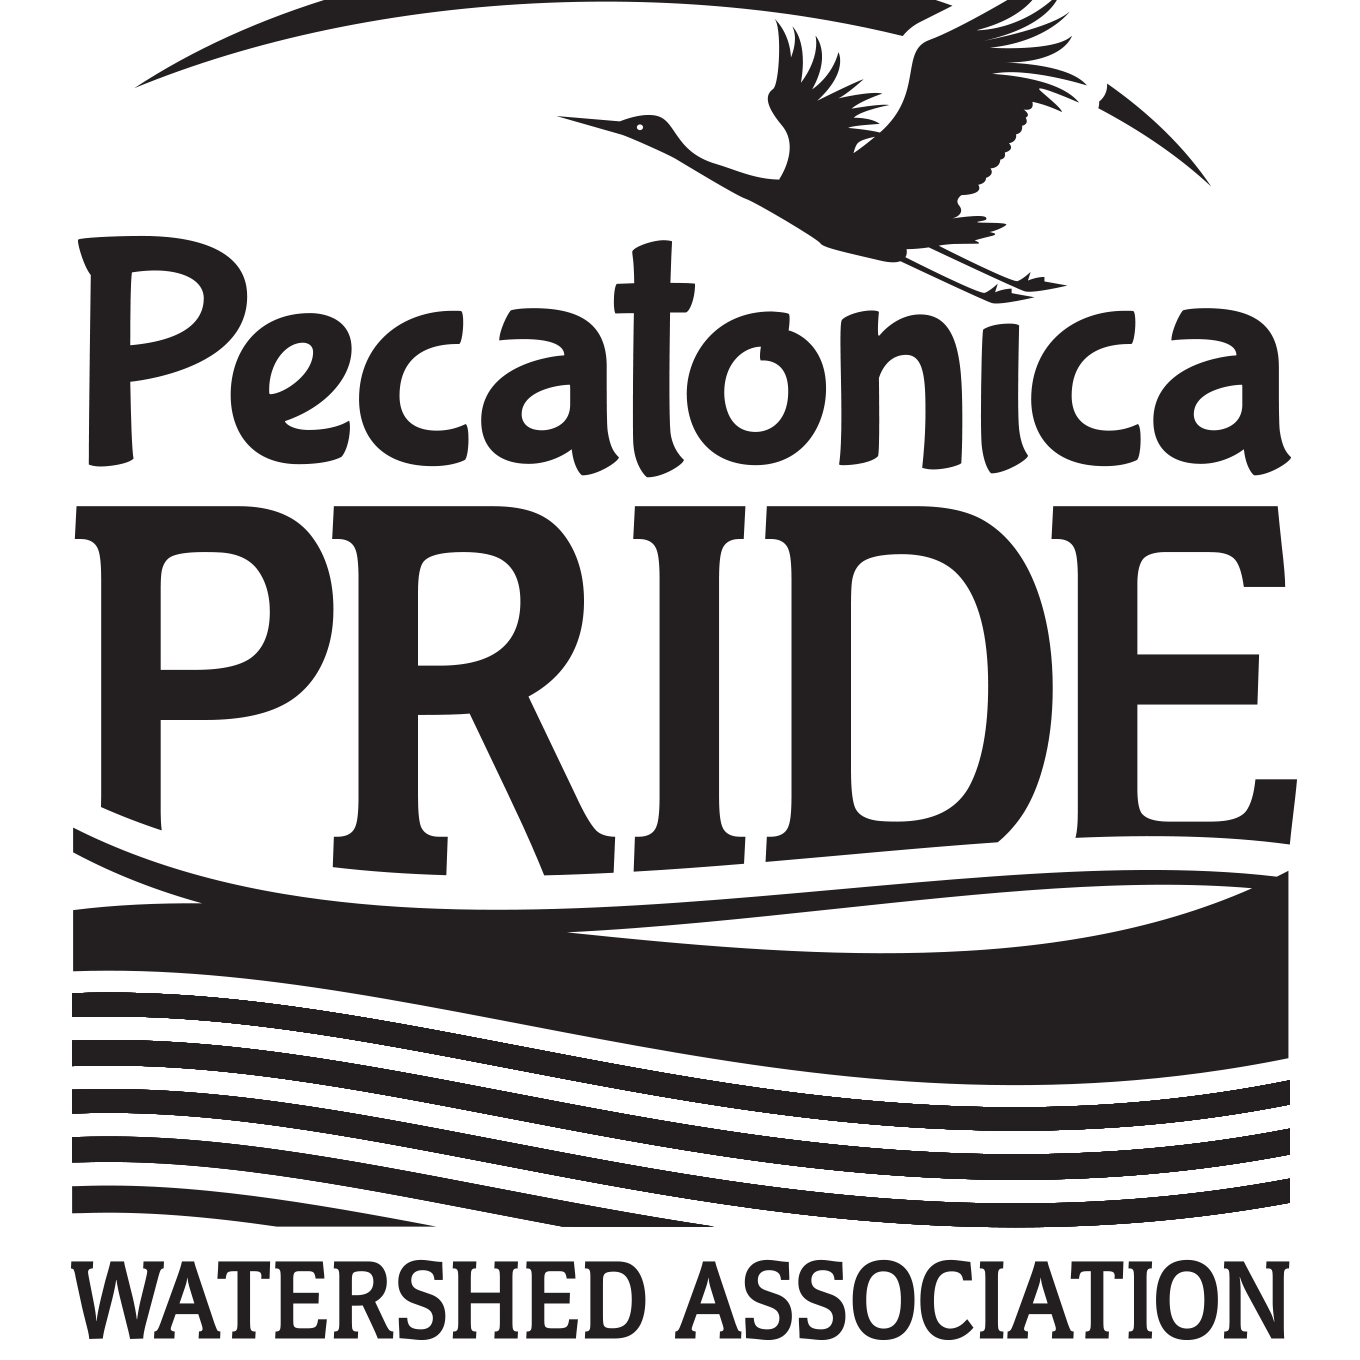 Pecatonica Pride Watershed Association